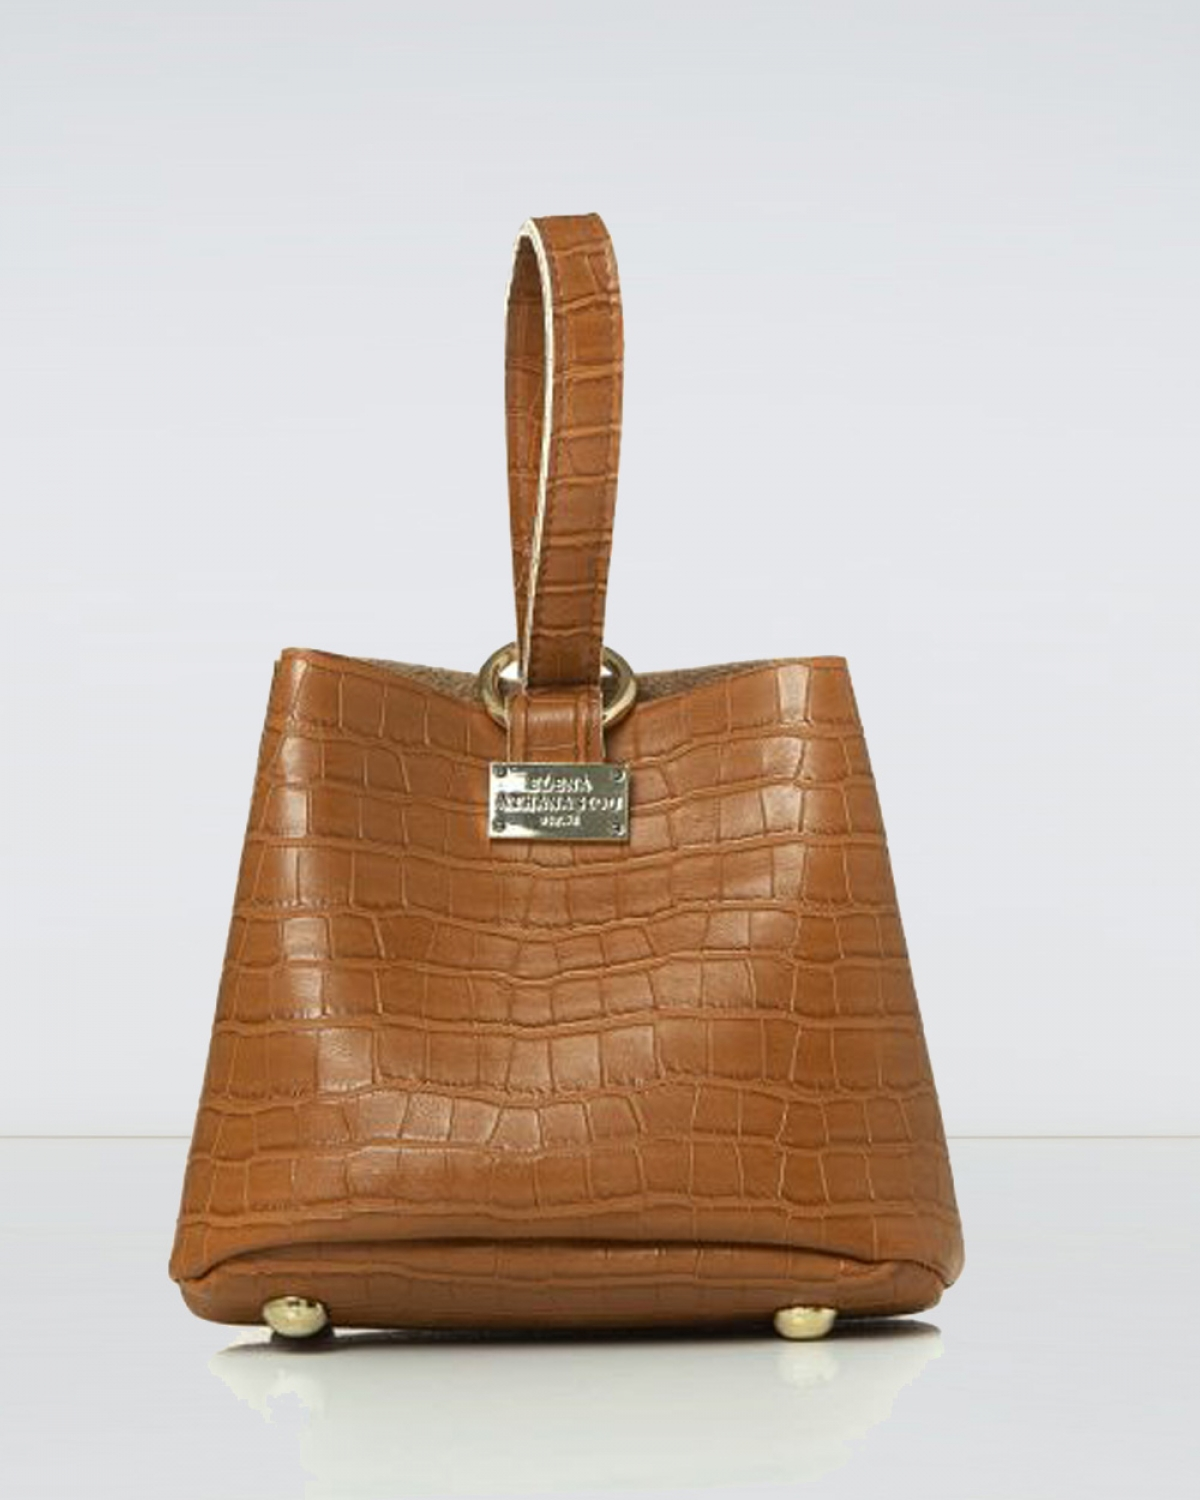 Tiny Croco Cognac Bag